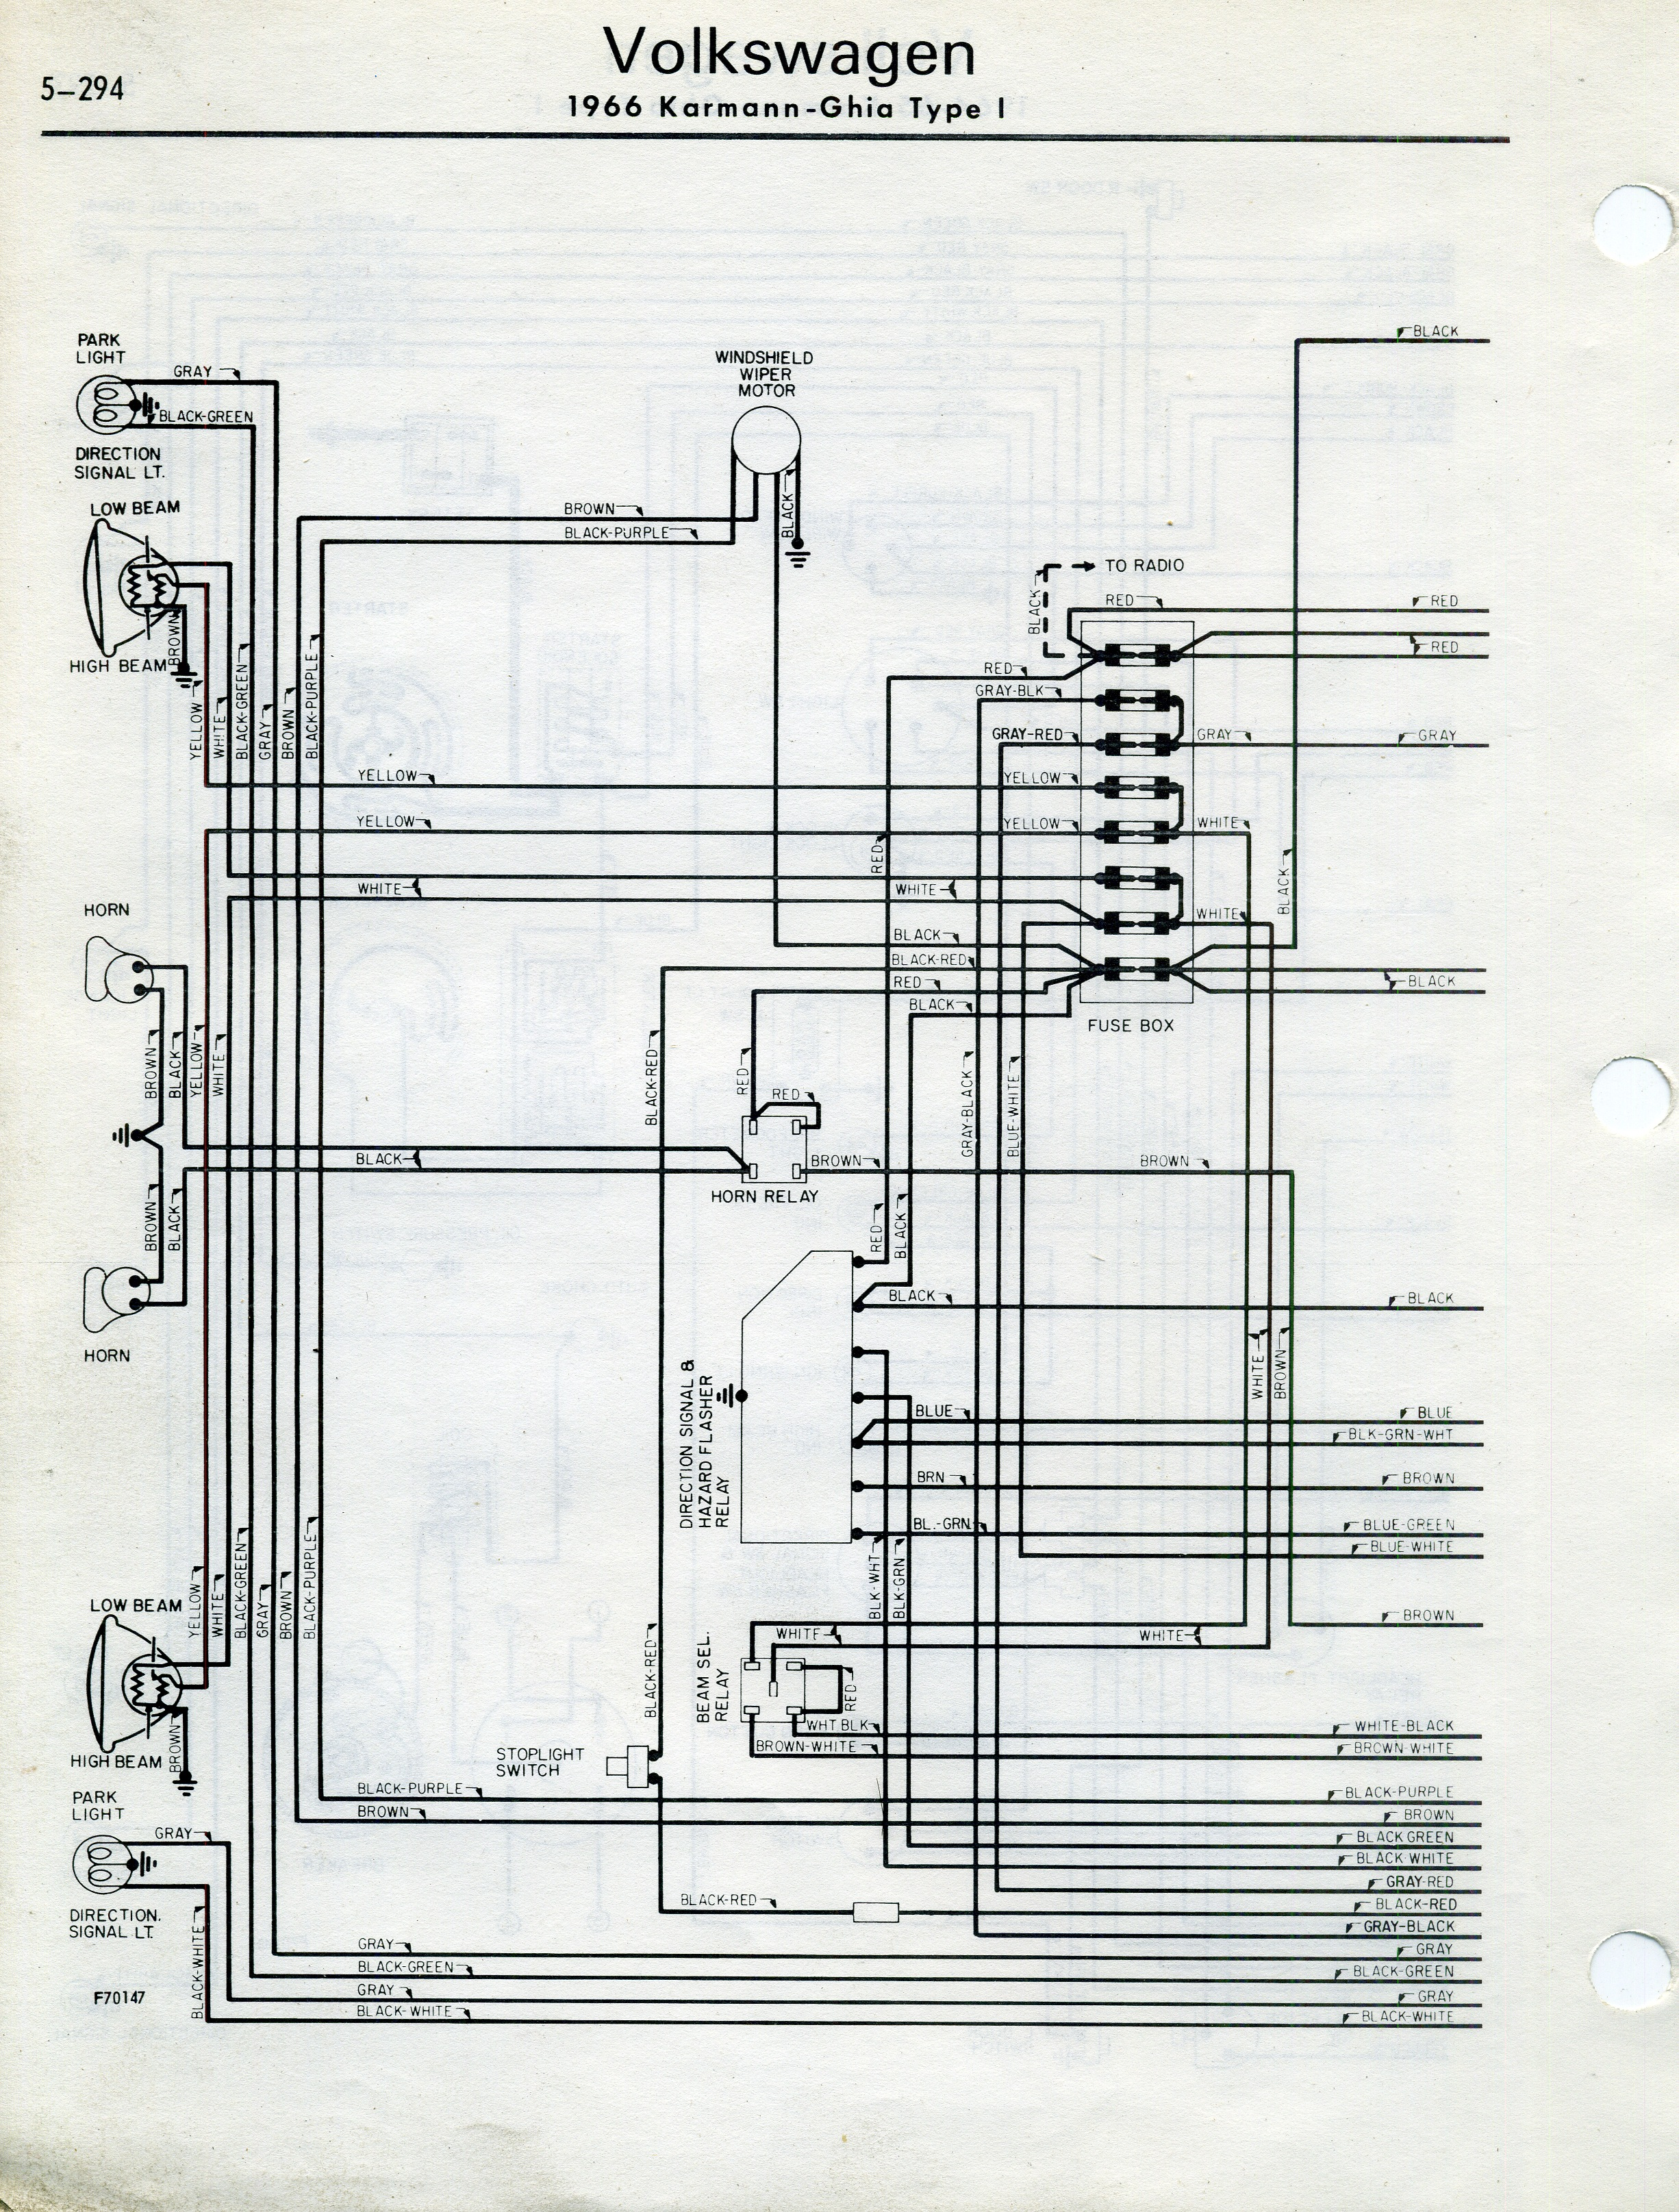 1973 volkswagen karmann ghia wiring diagram thesamba.com :: karmann ghia wiring diagrams #15